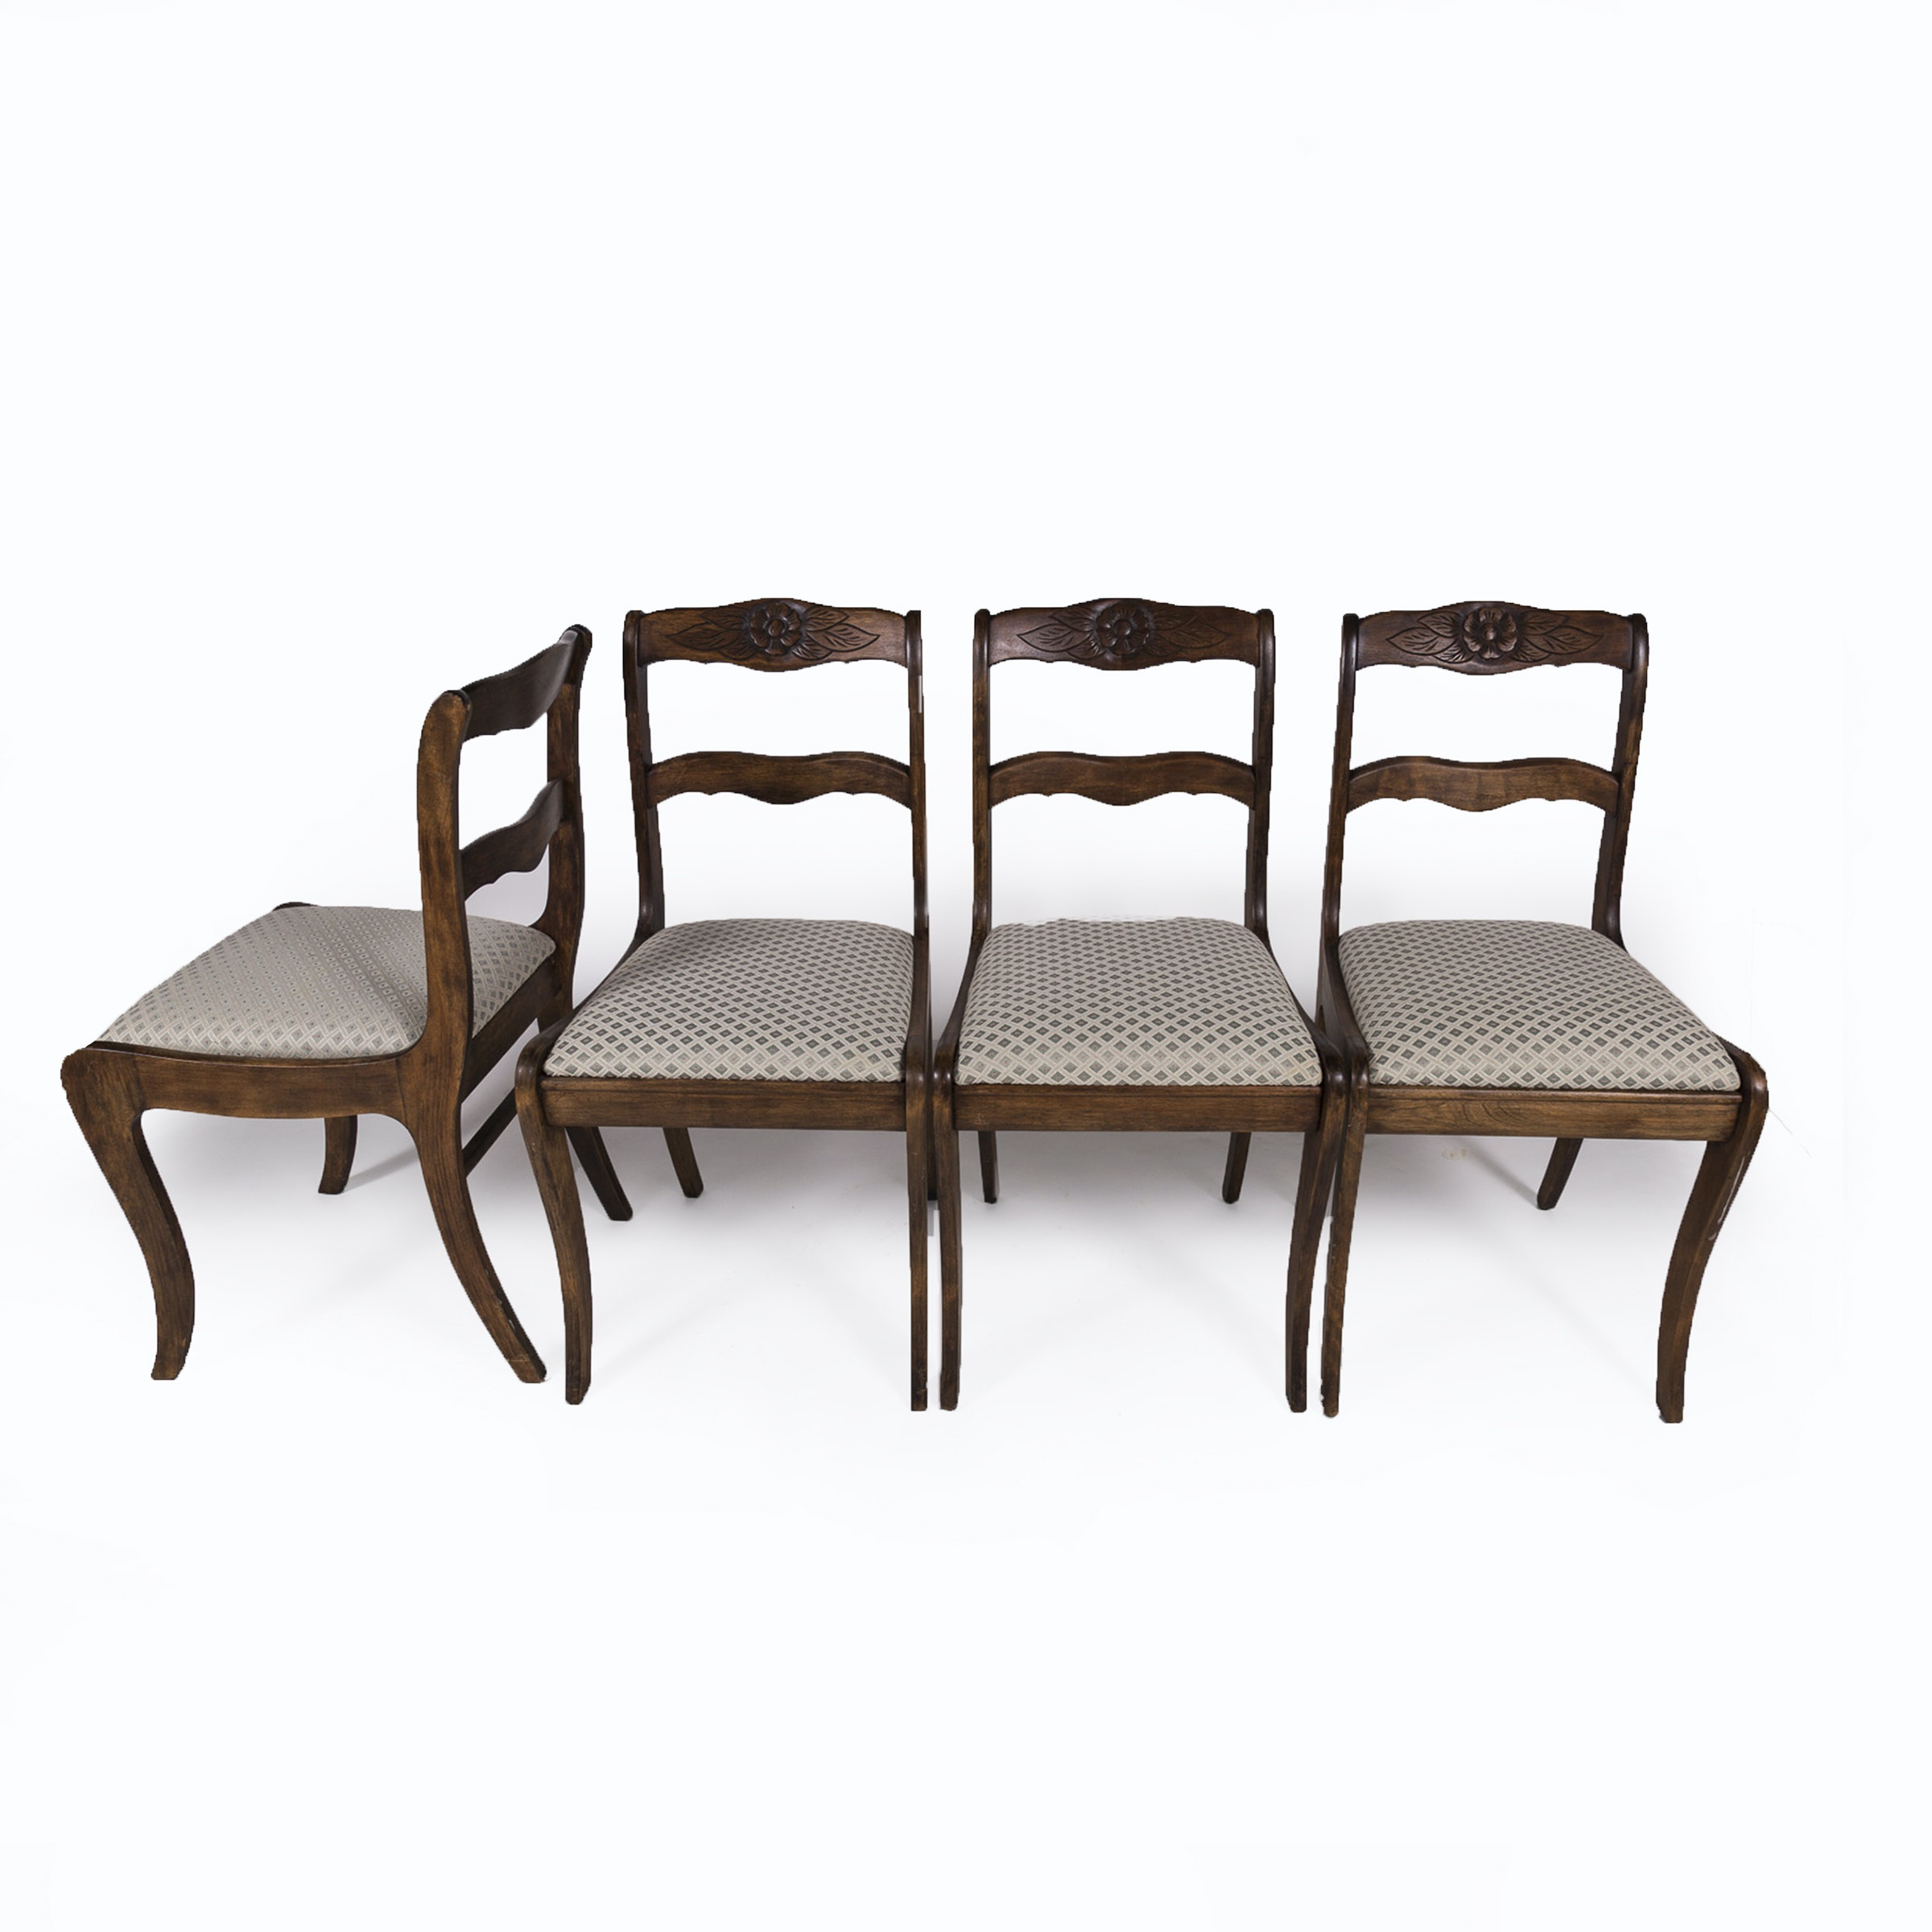 Set of Four Victorian Style Walnut Upholstered Dining Chairs